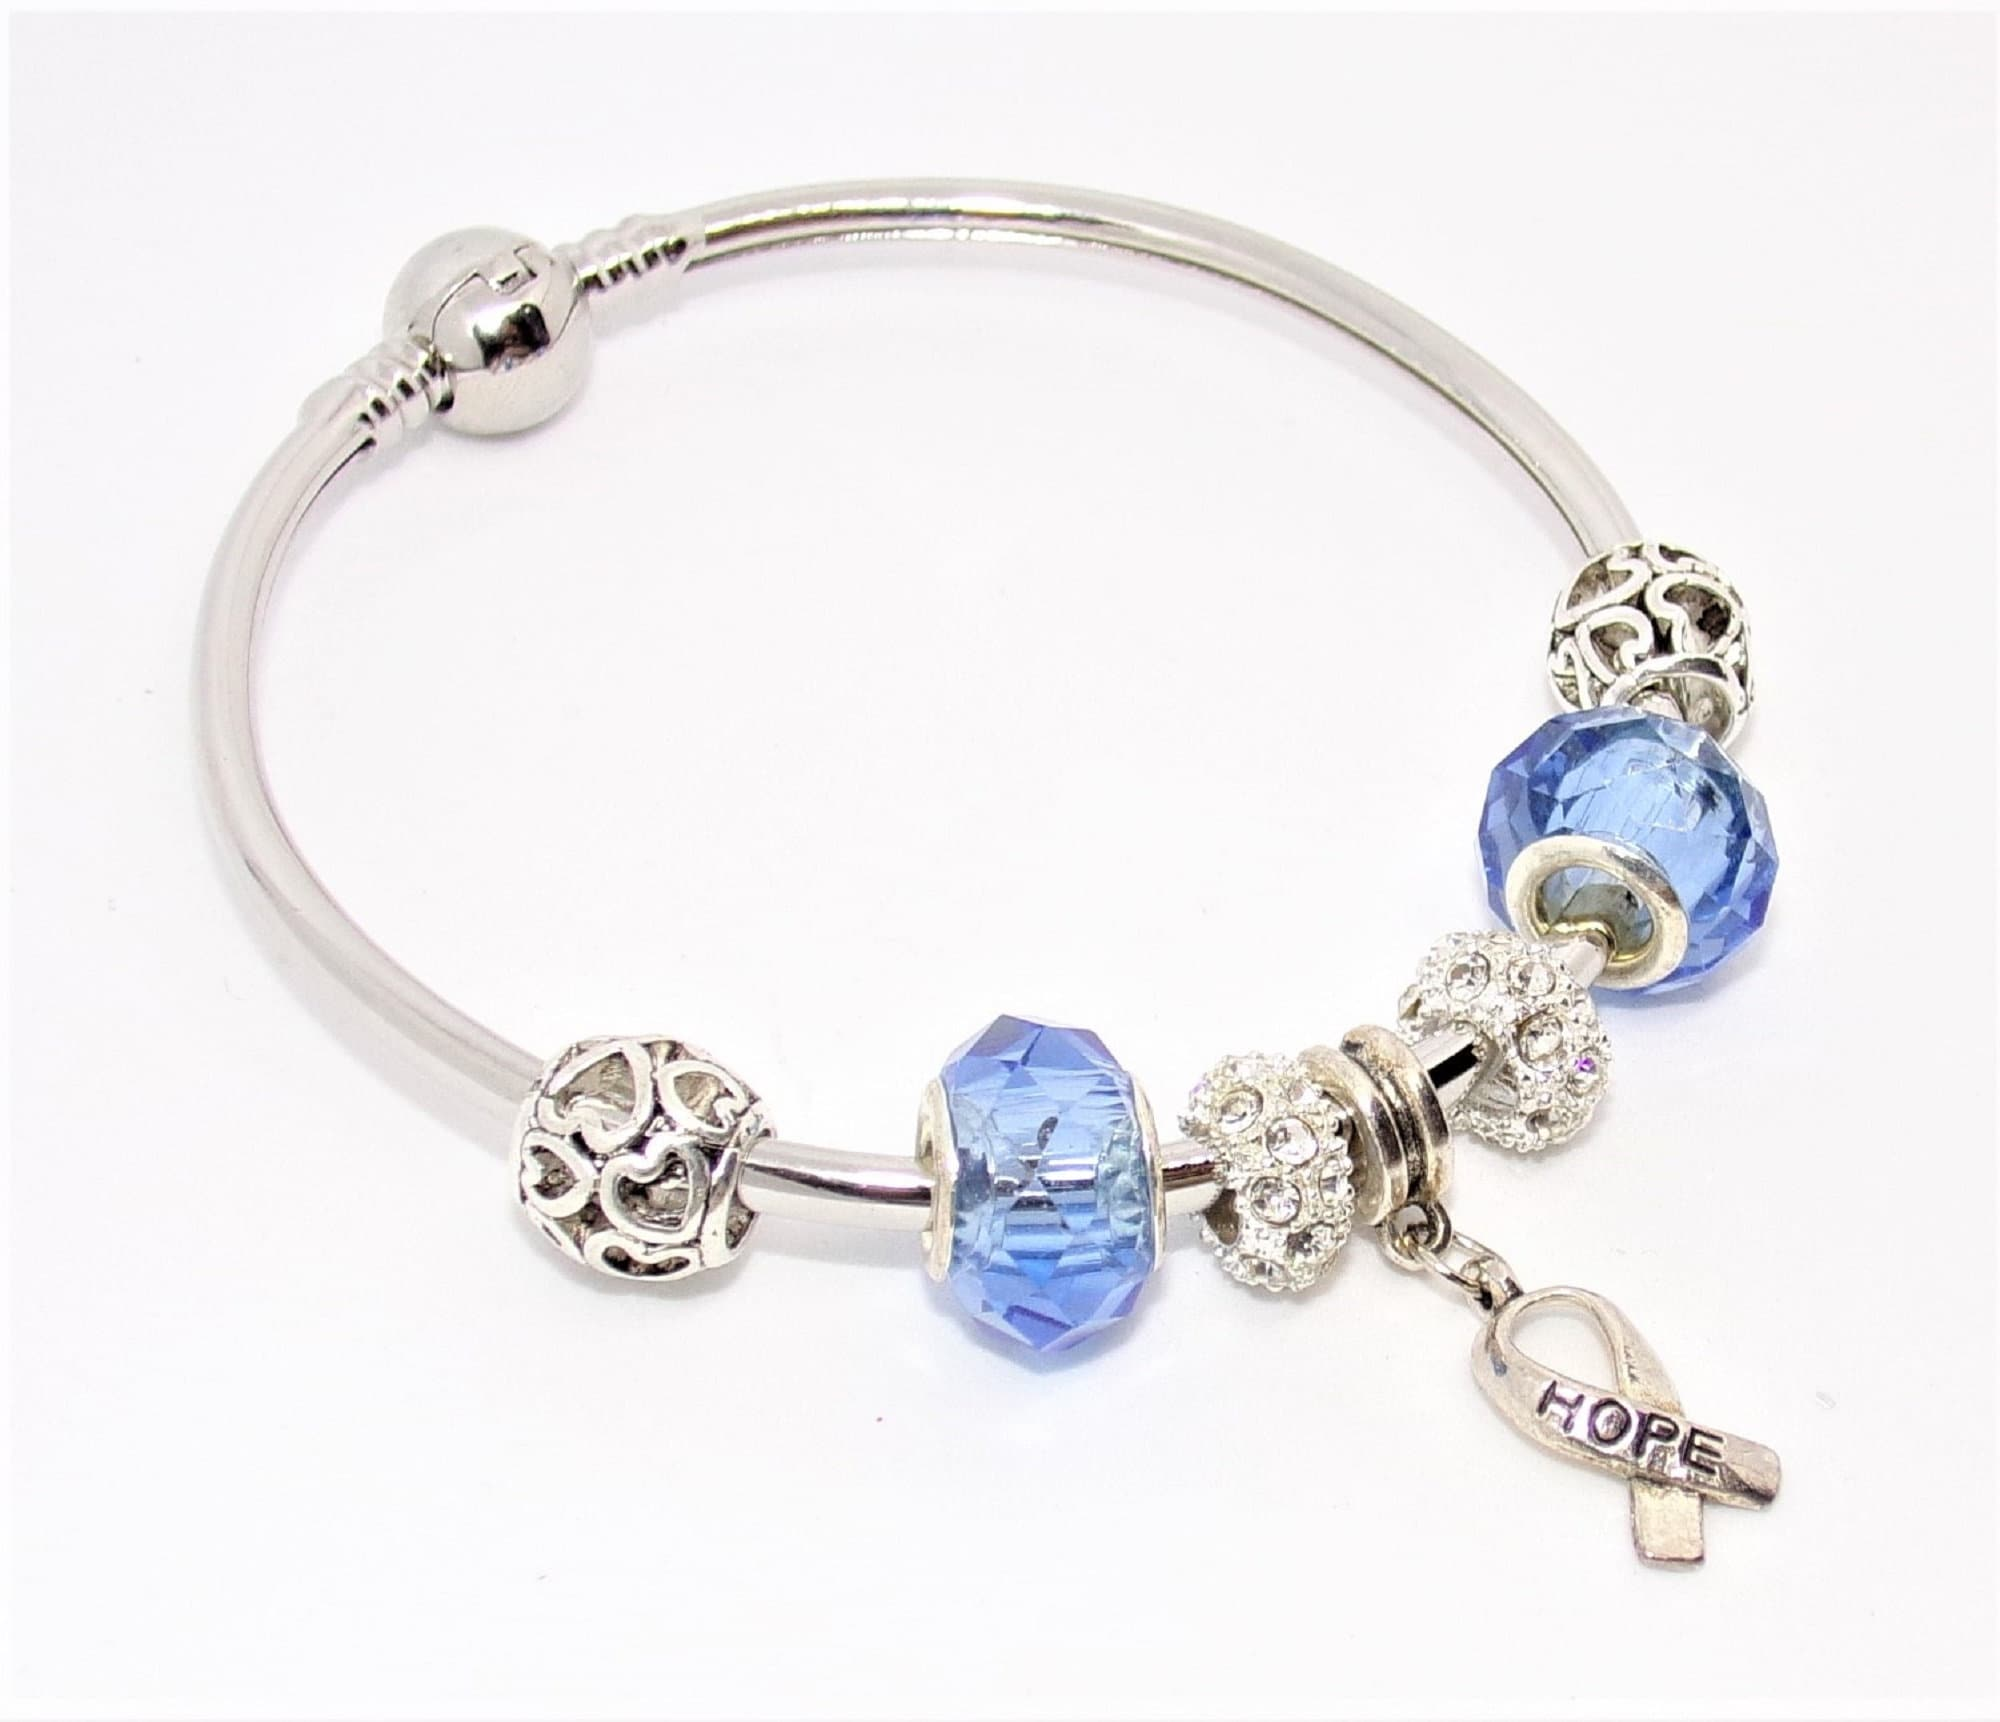 JONC bracelet with silver and blue Pandora style charms